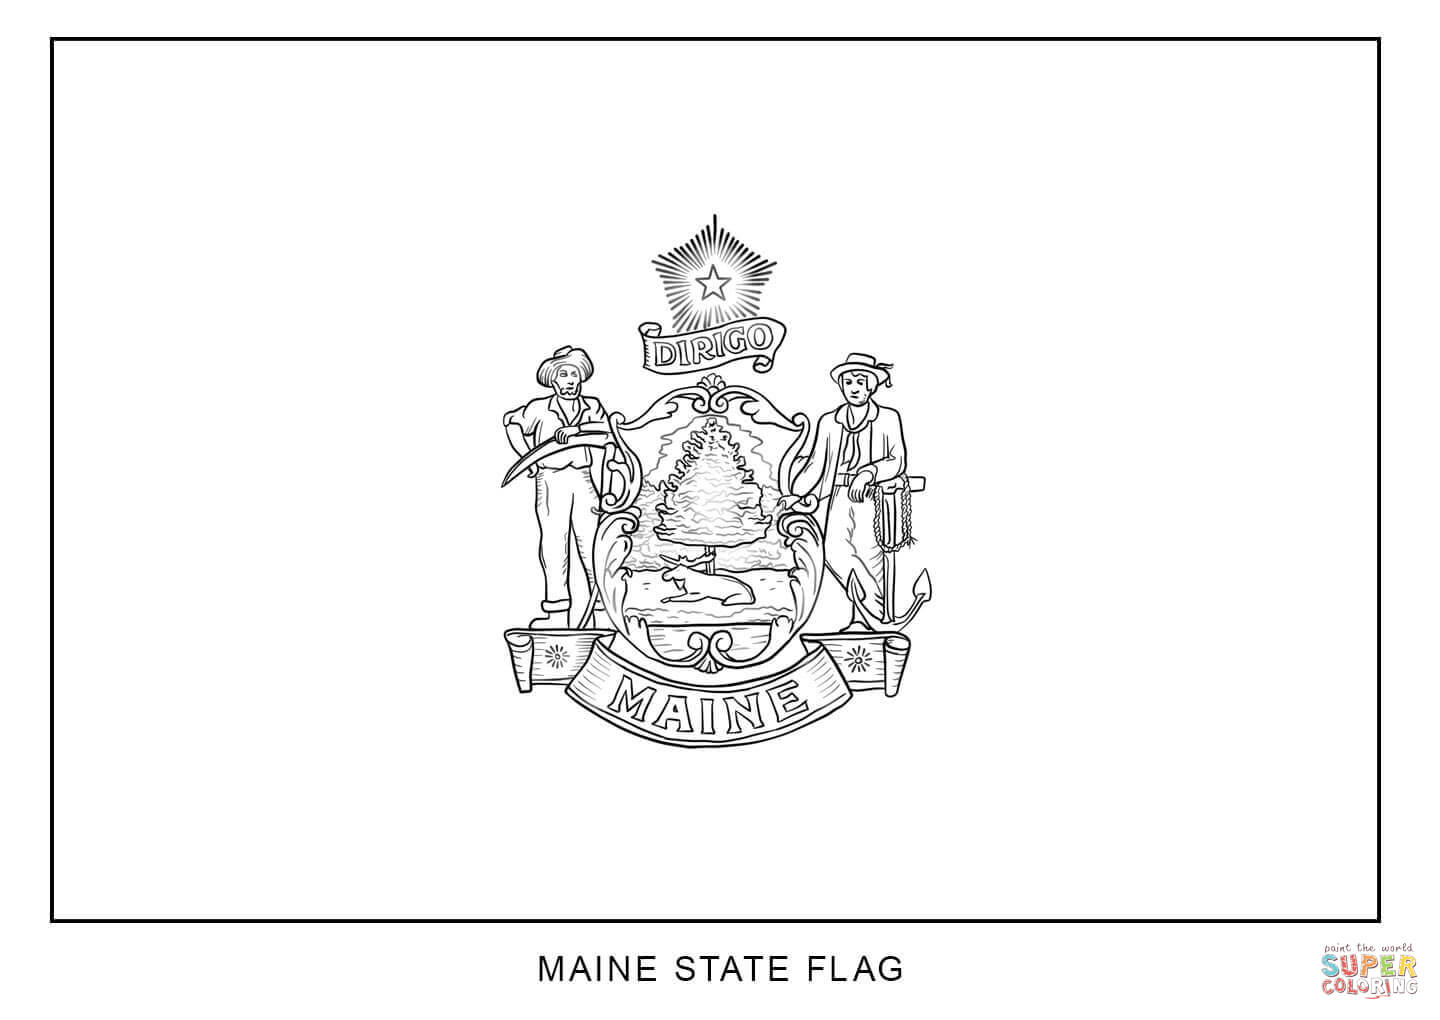 maine state flag coloring page maine state flag coloring page color luna state flag maine coloring page